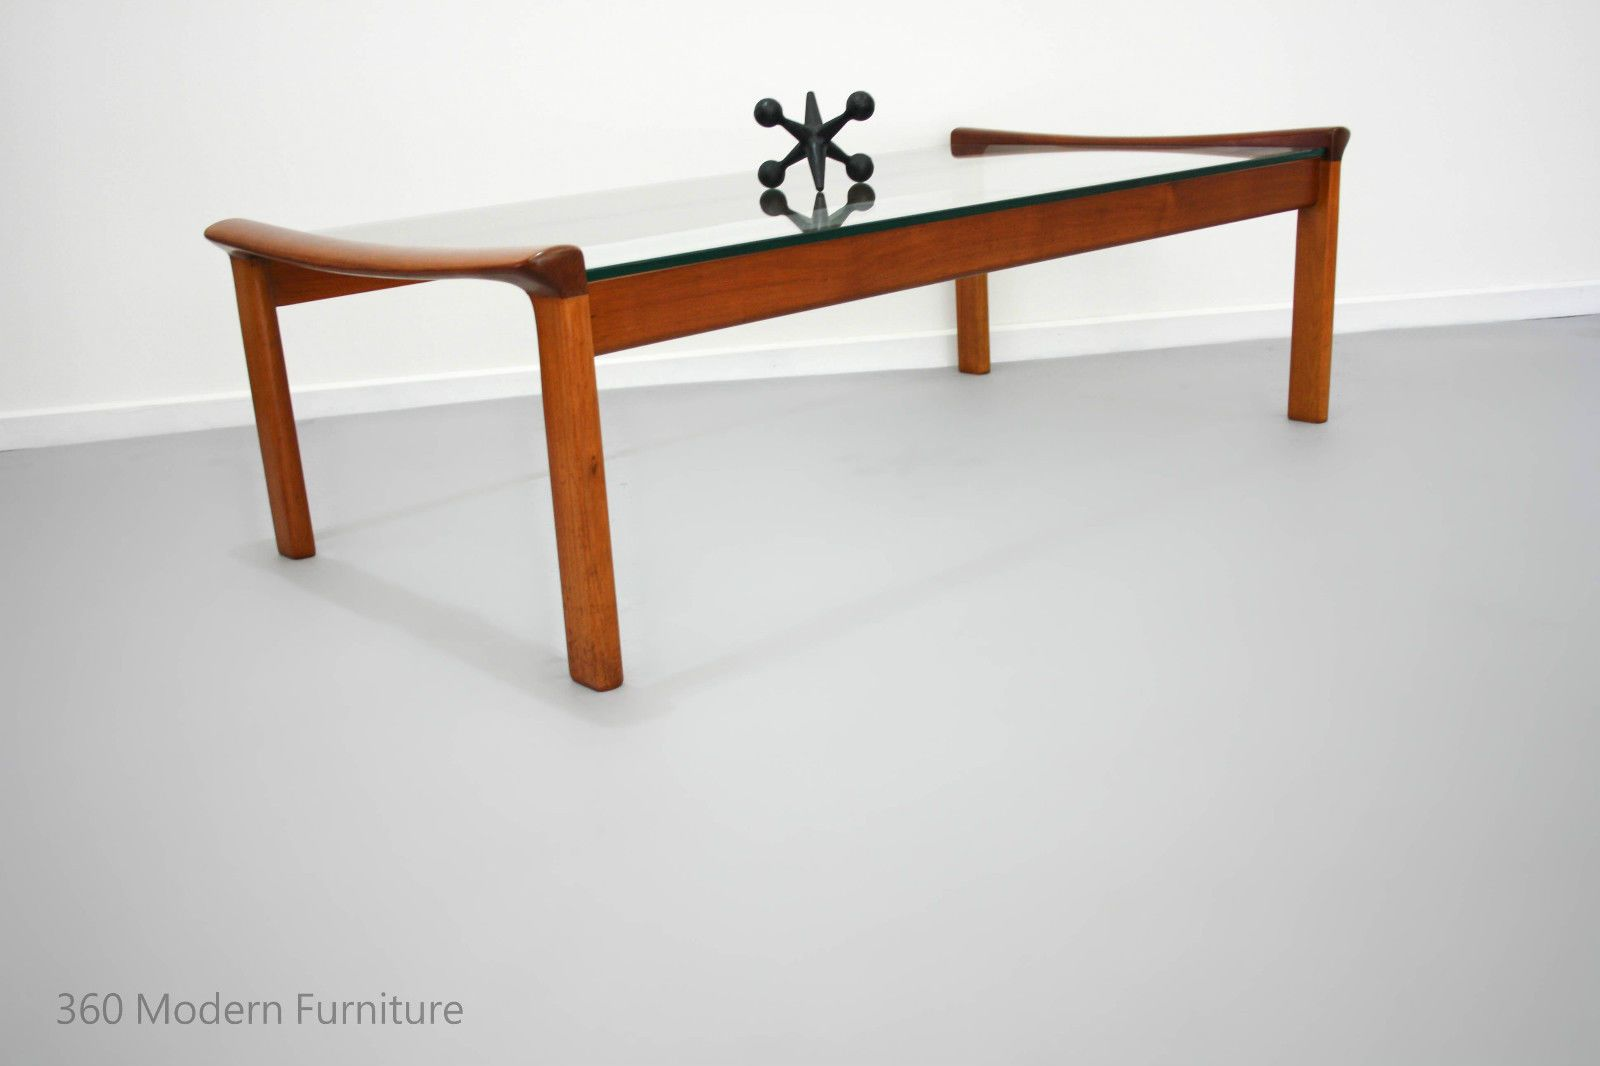 Mid century coffee table tessa t21 large retro vintage fred lowen mid century coffee table tessa t21 large retro vintage fred lowen parker era in home geotapseo Image collections